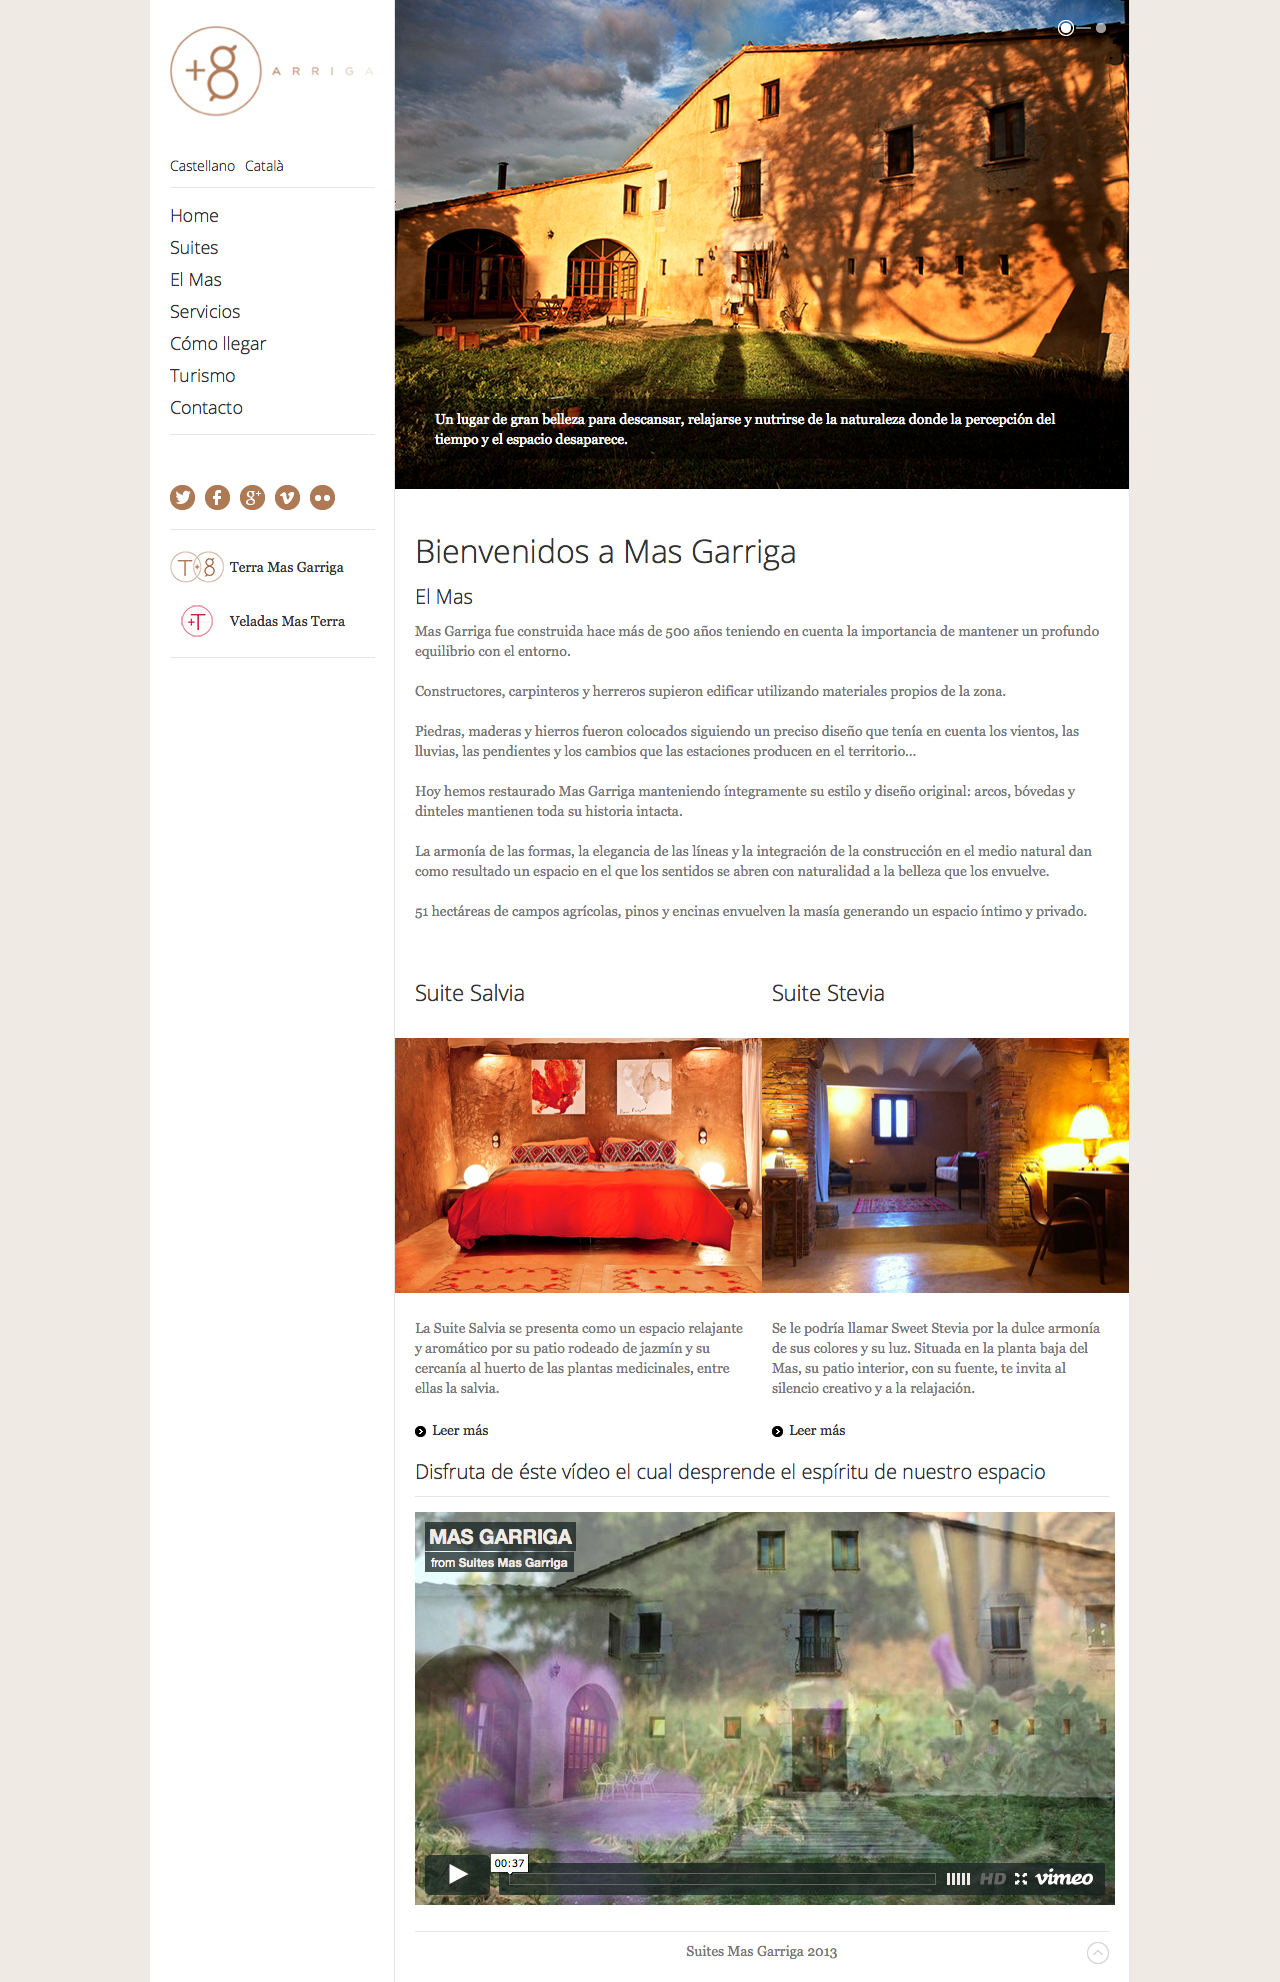 suitesmasgarriga website